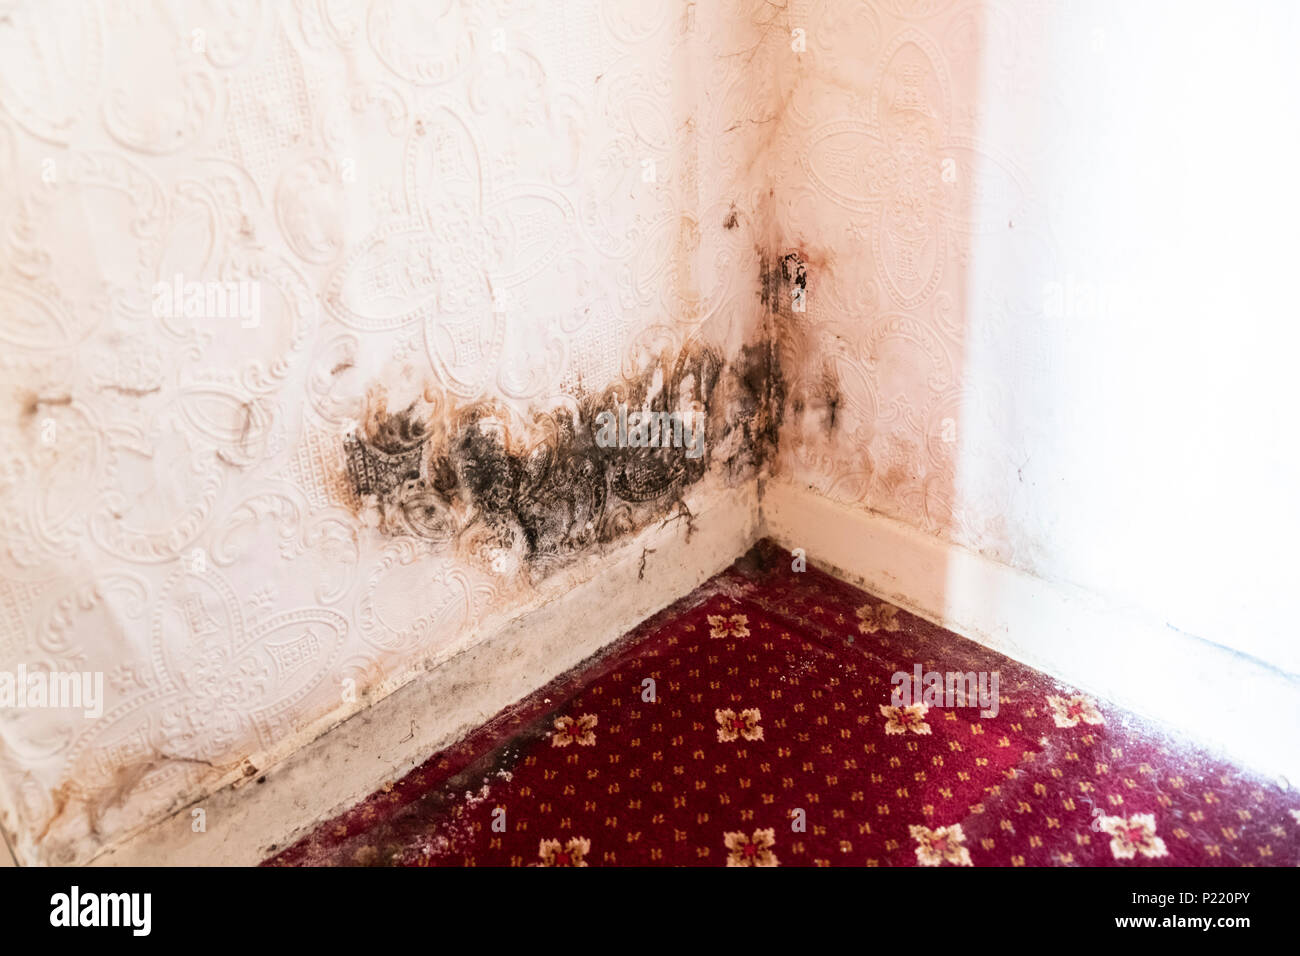 Rising damp causing mold in a corner - Stock Image